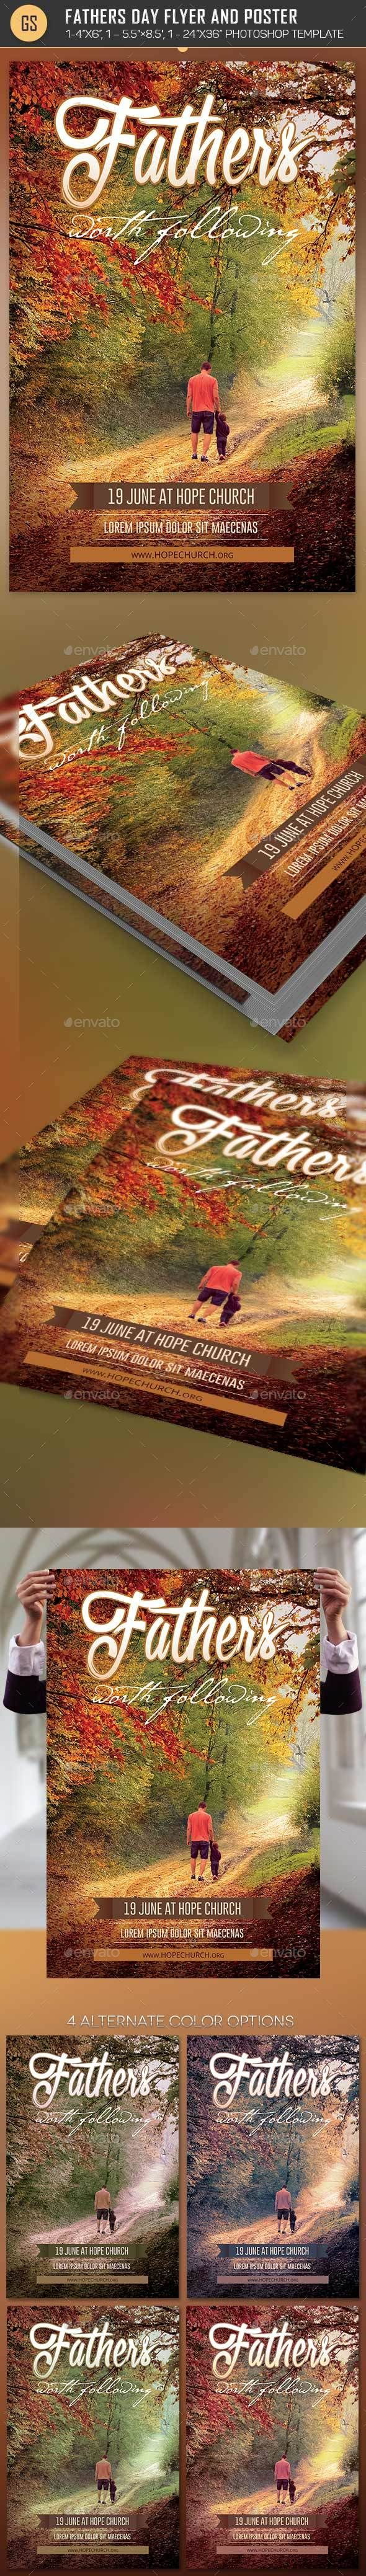 Fathers Day Flyer Poster Template is for church sermon or events for Fathers Day. Great for Sermons, Bible Study, Conventions, Conferences and more. The layered Photoshop files are color coded and organized in folders. 4 One-Click Color Options are included.